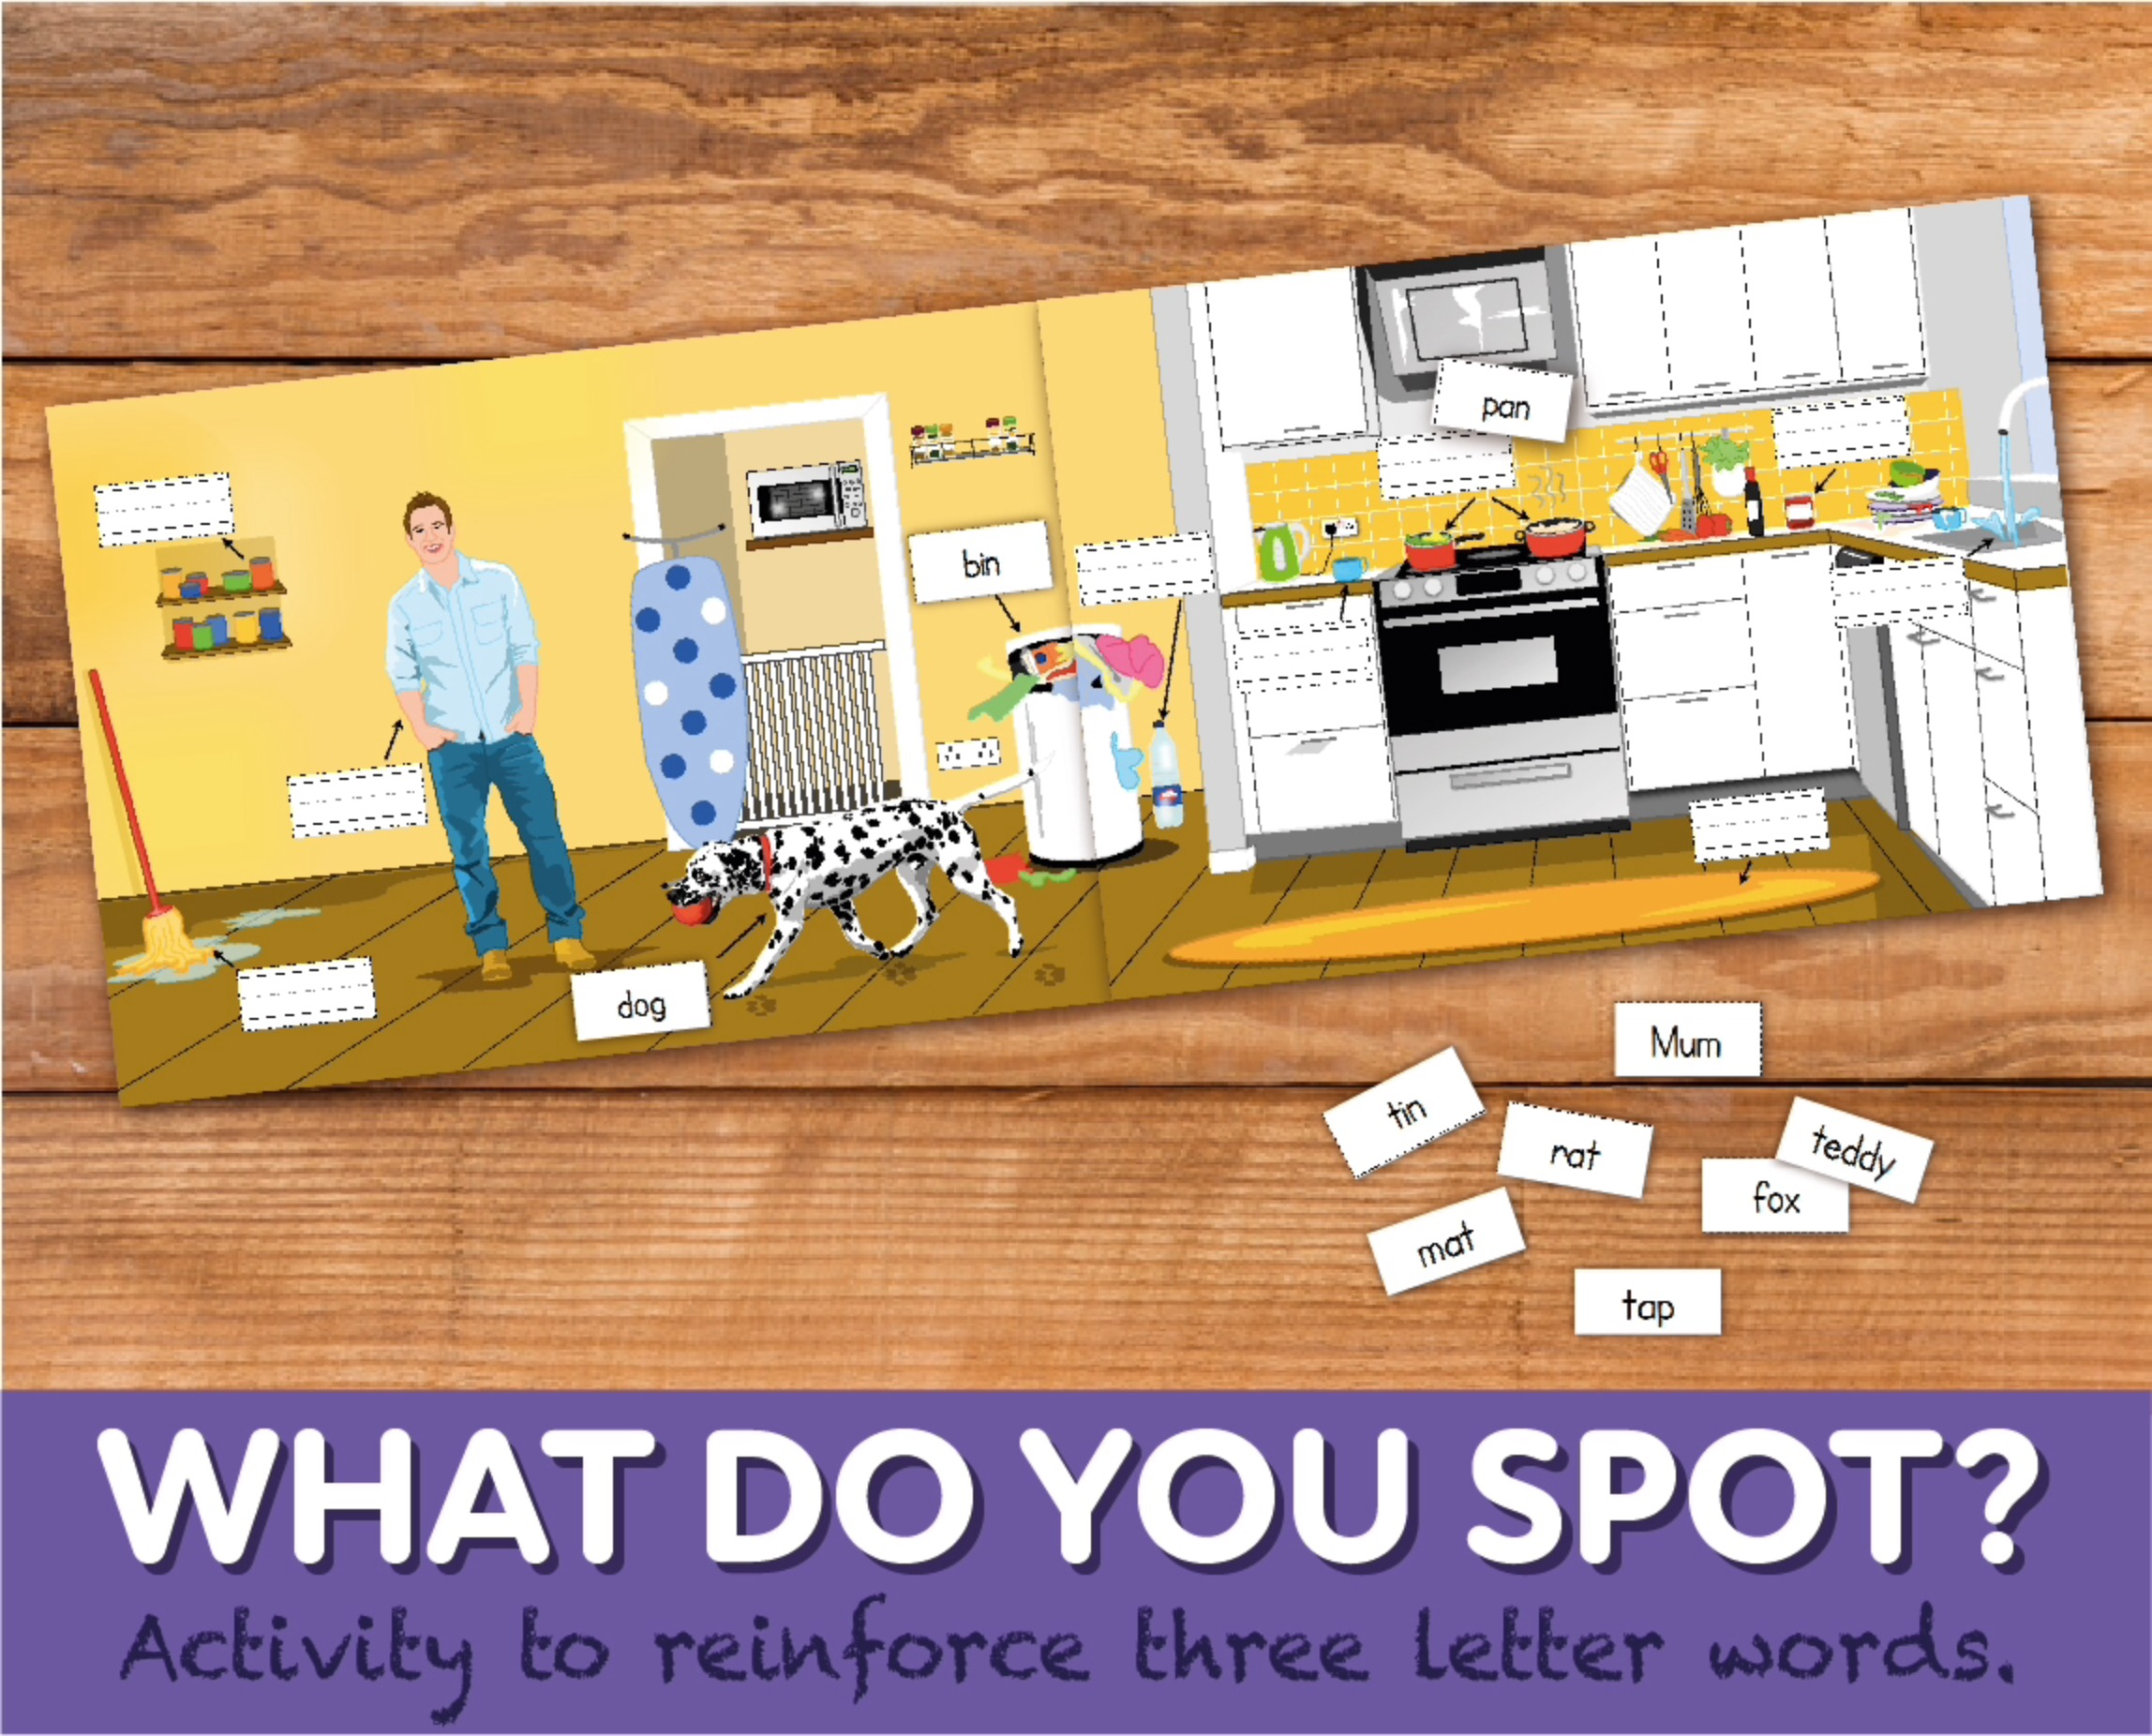 Play A Game Of 'What Do You Spot?' To Reinforce Three Letter Words (4-7 years)